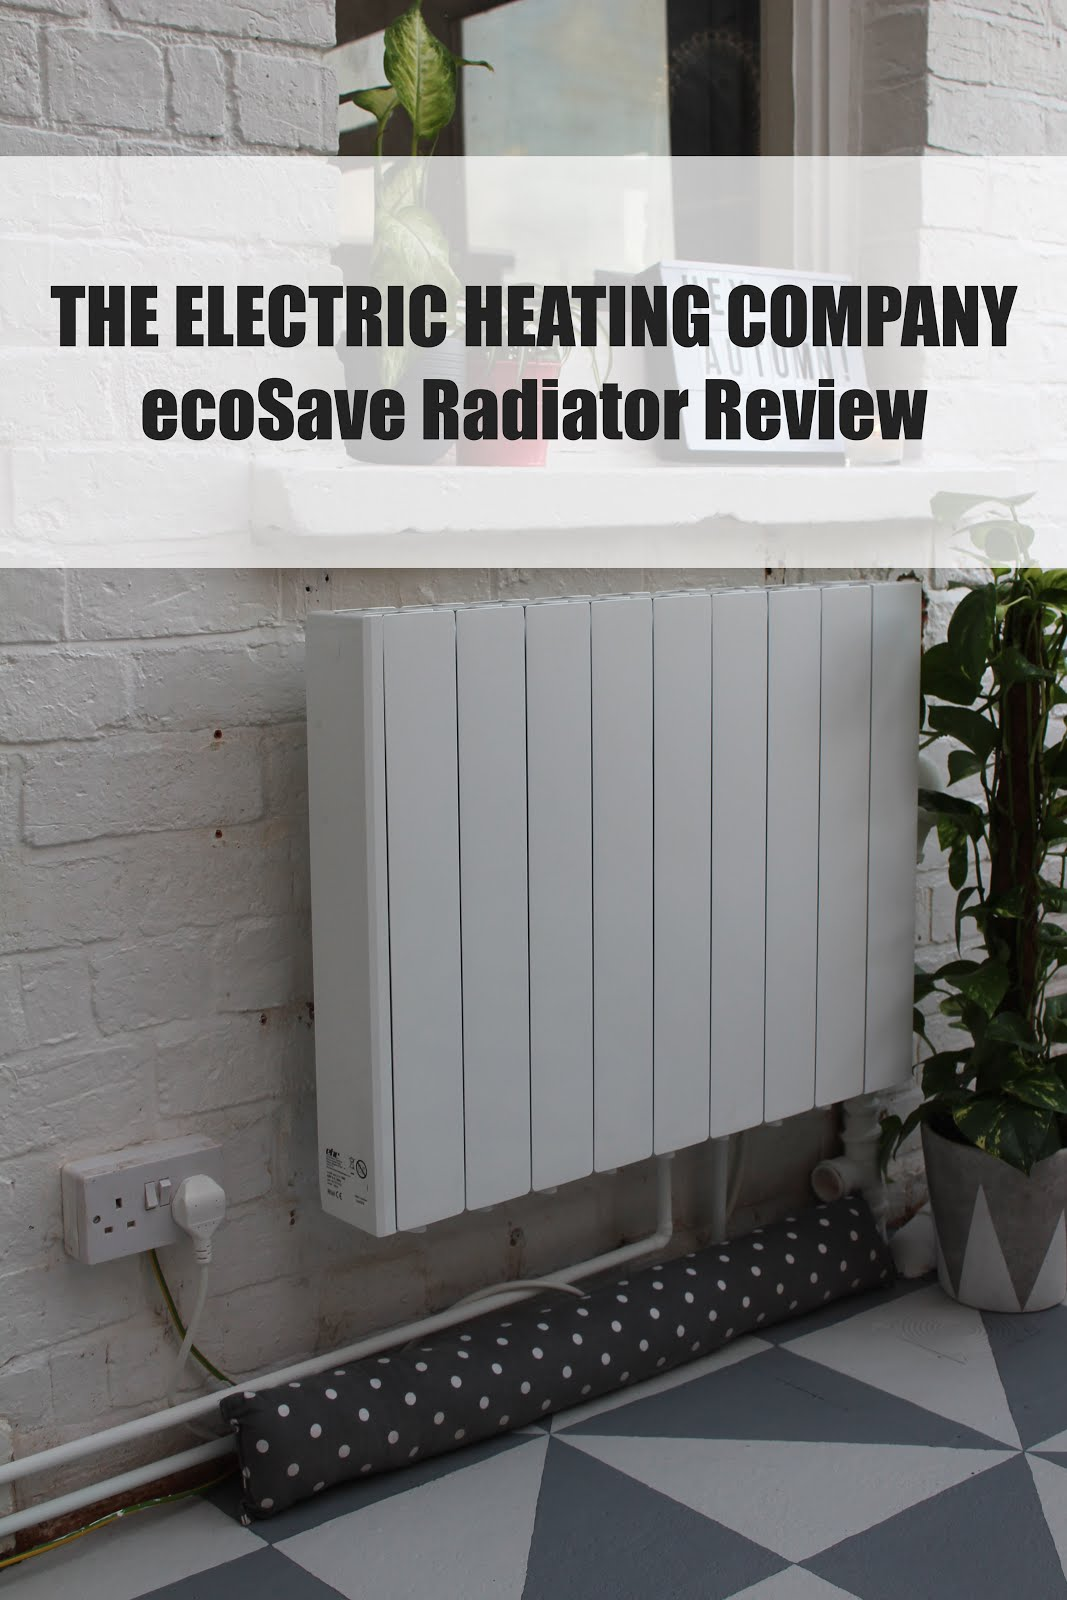 The Electric Heating Company ecoSave Radiator Review